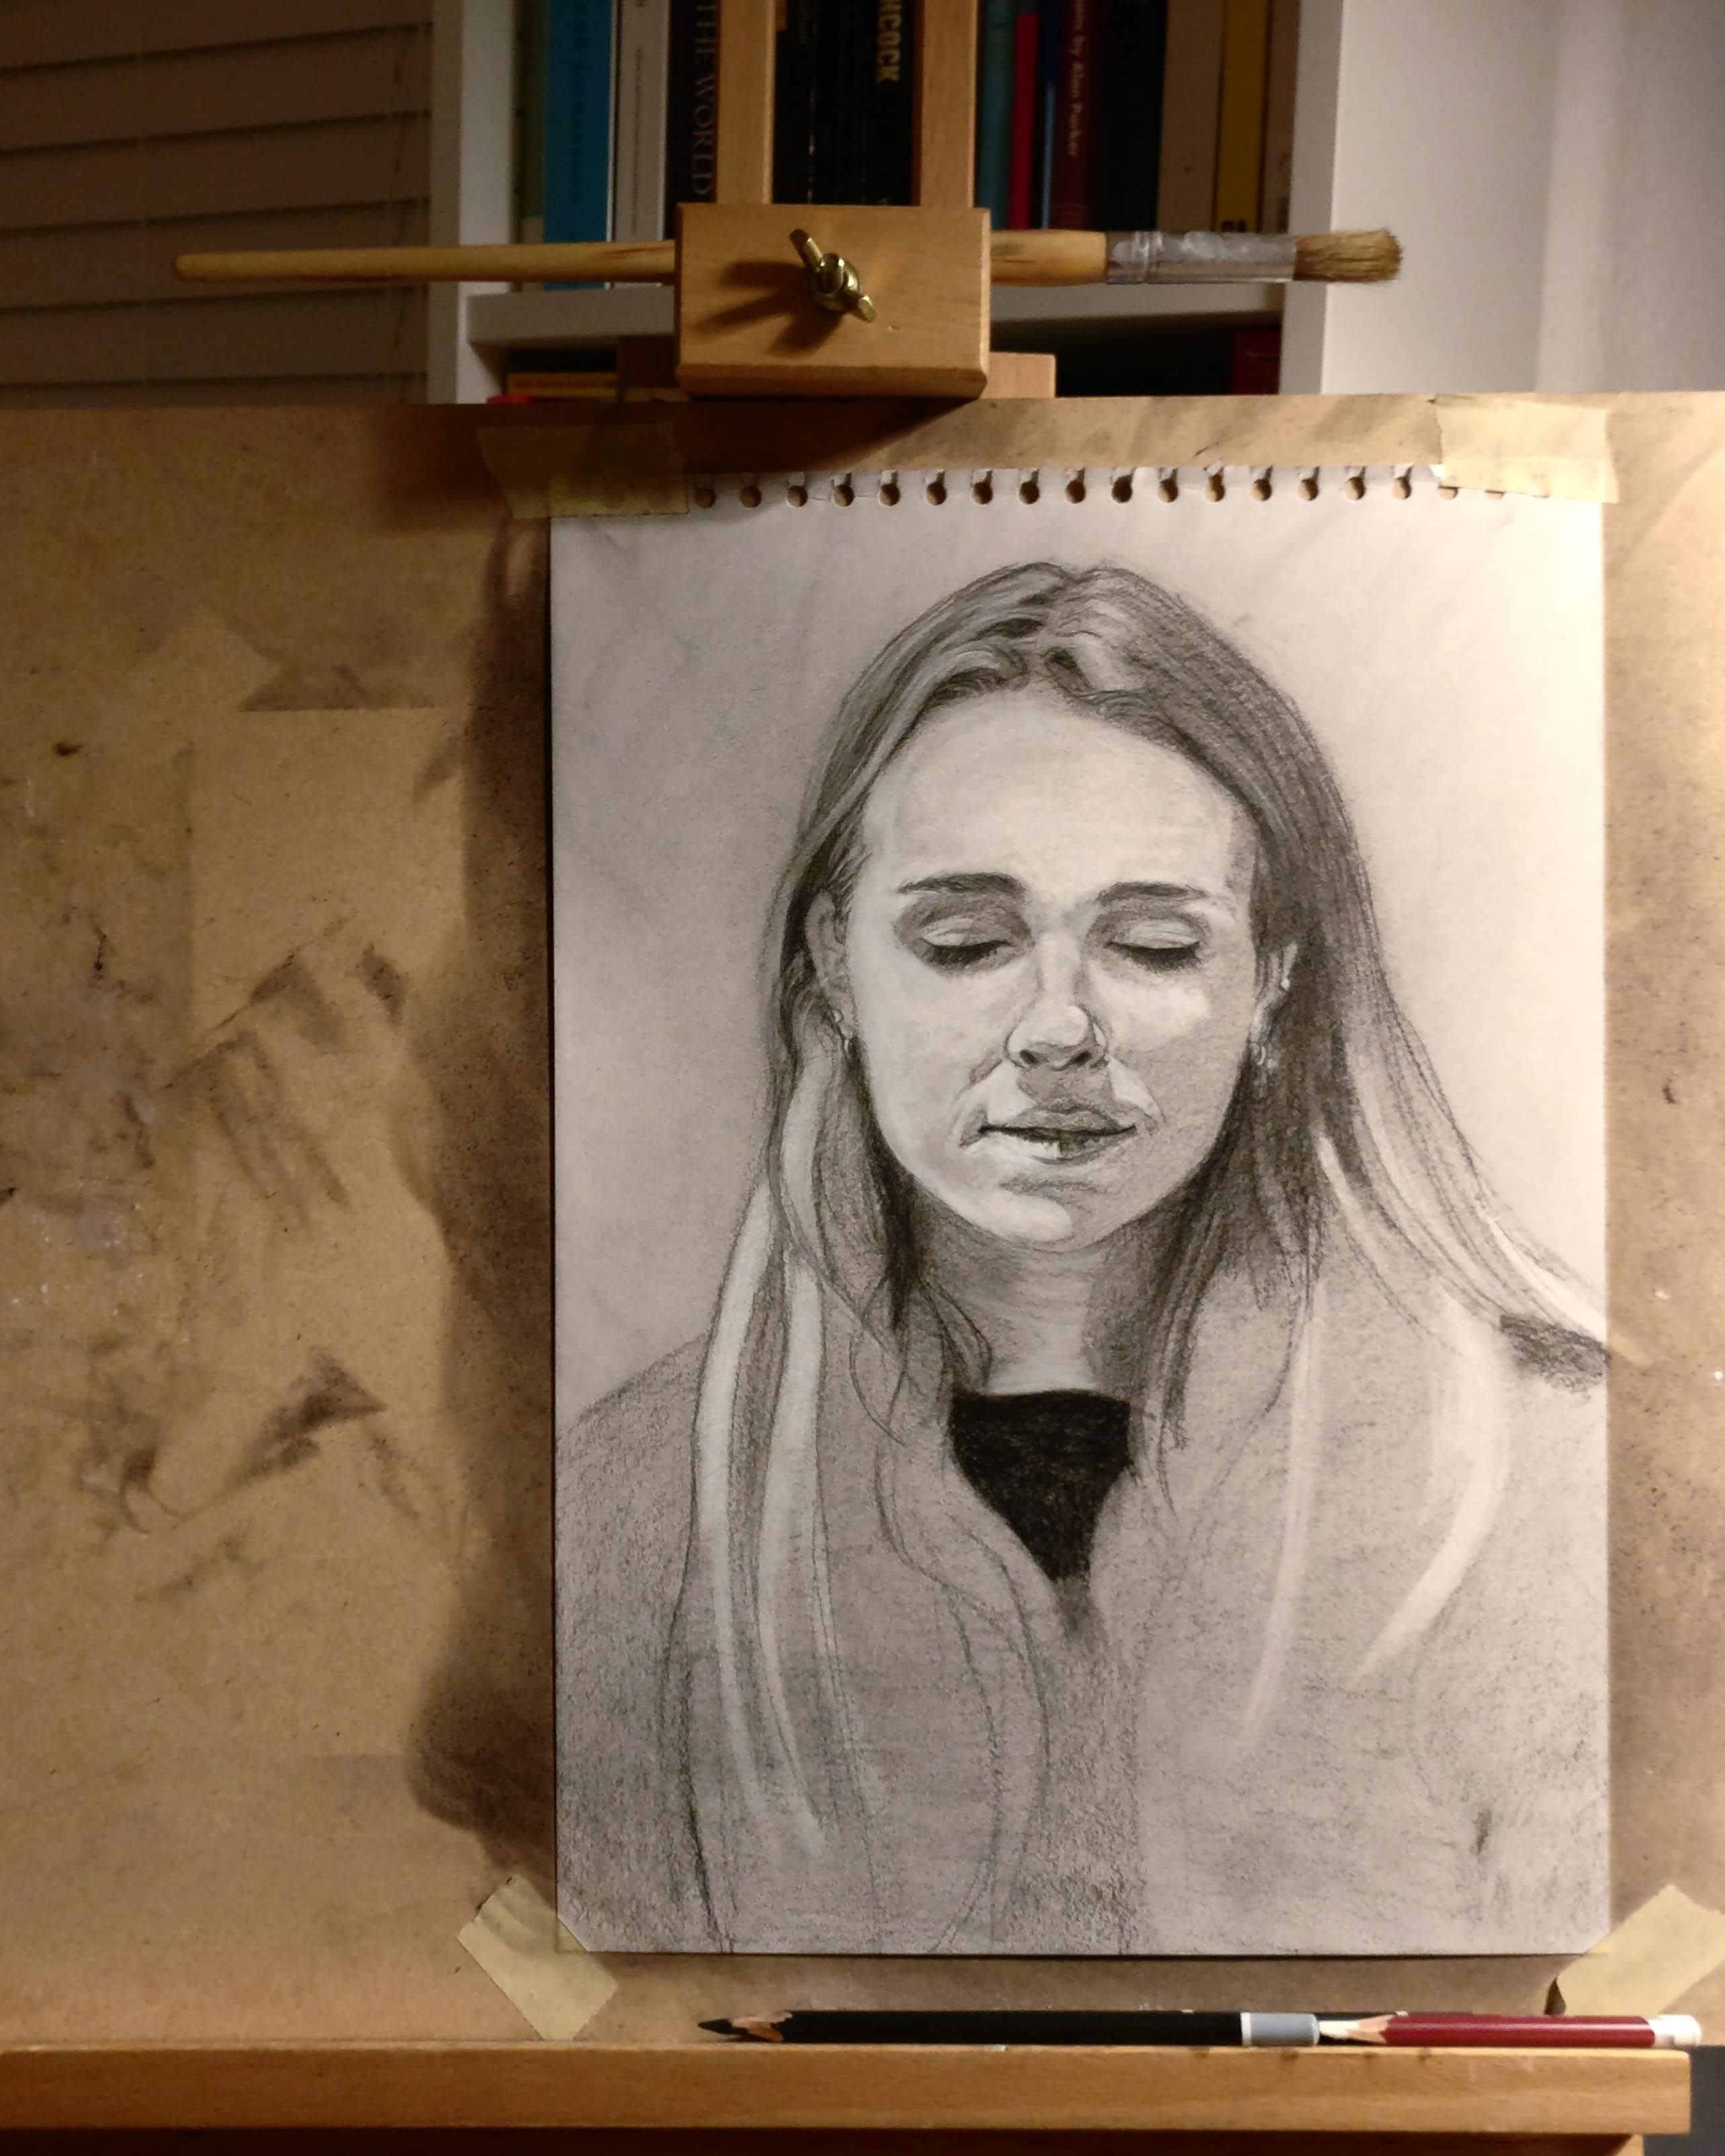 Charcoal drawing on an easel